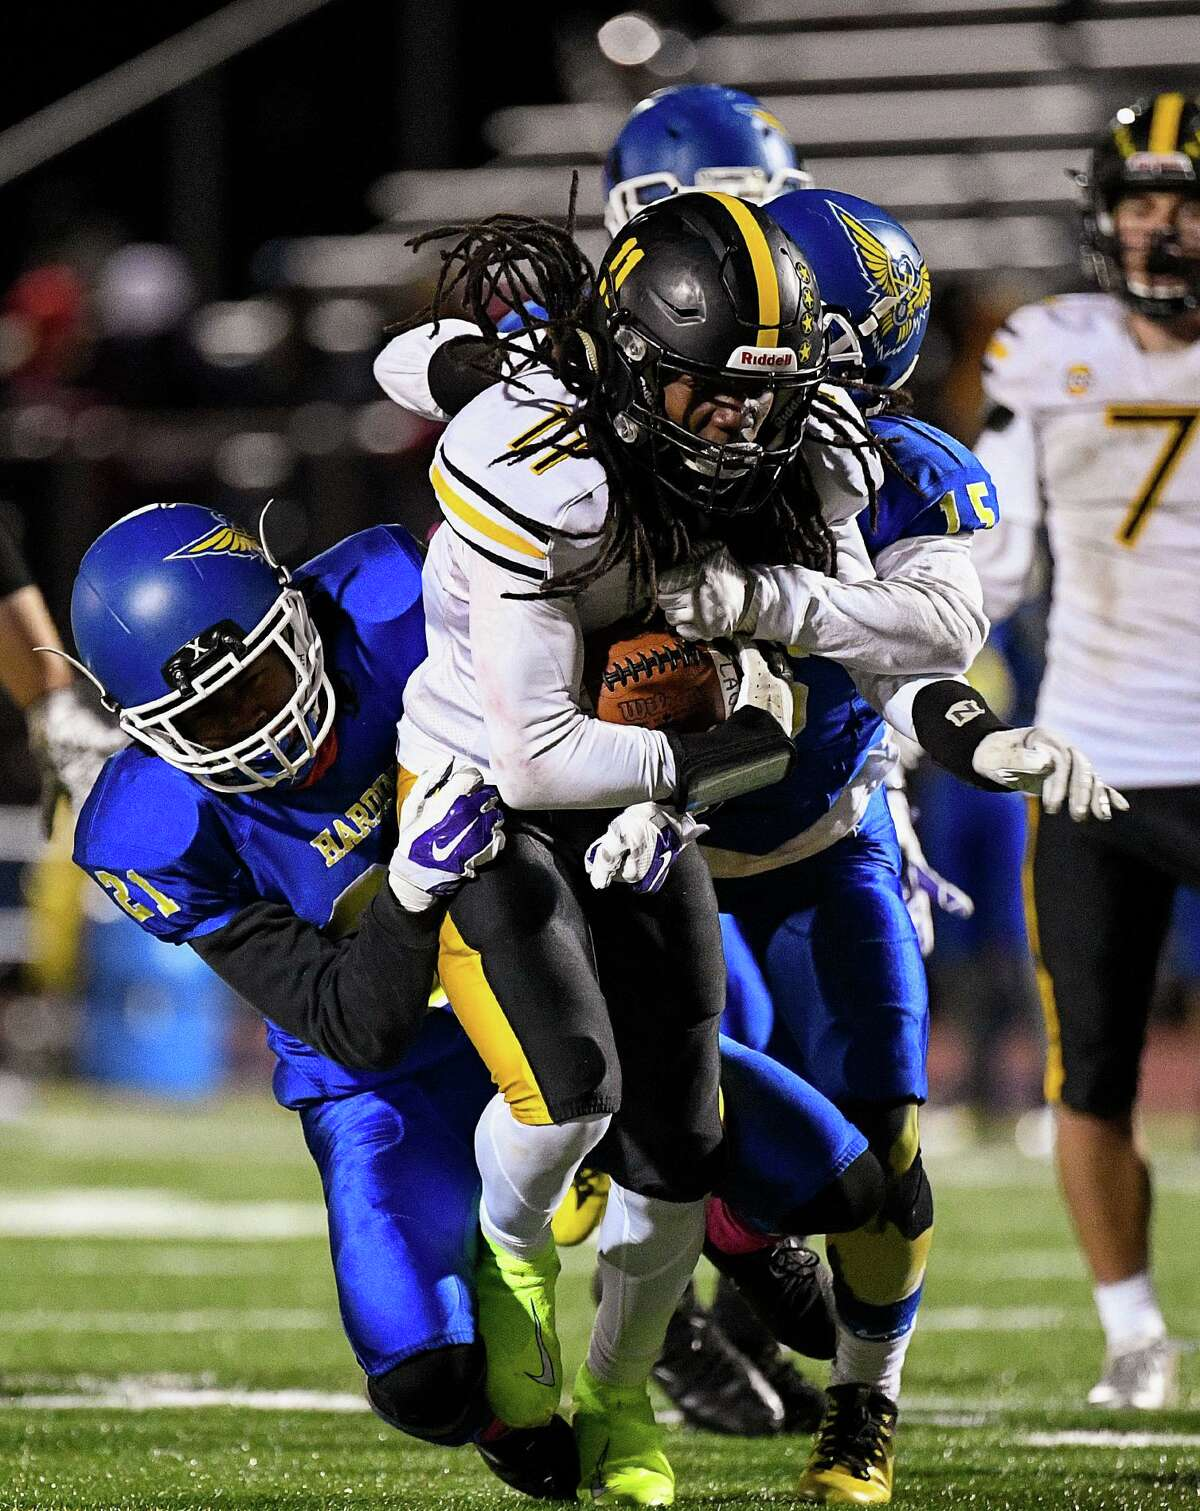 Law's Curtis Murphy fights for extra yards against the Harding defense. Harding High defeated Jonathan Law, 40-21, at Harding High in Bridgeport, Friday, November 8, 2019